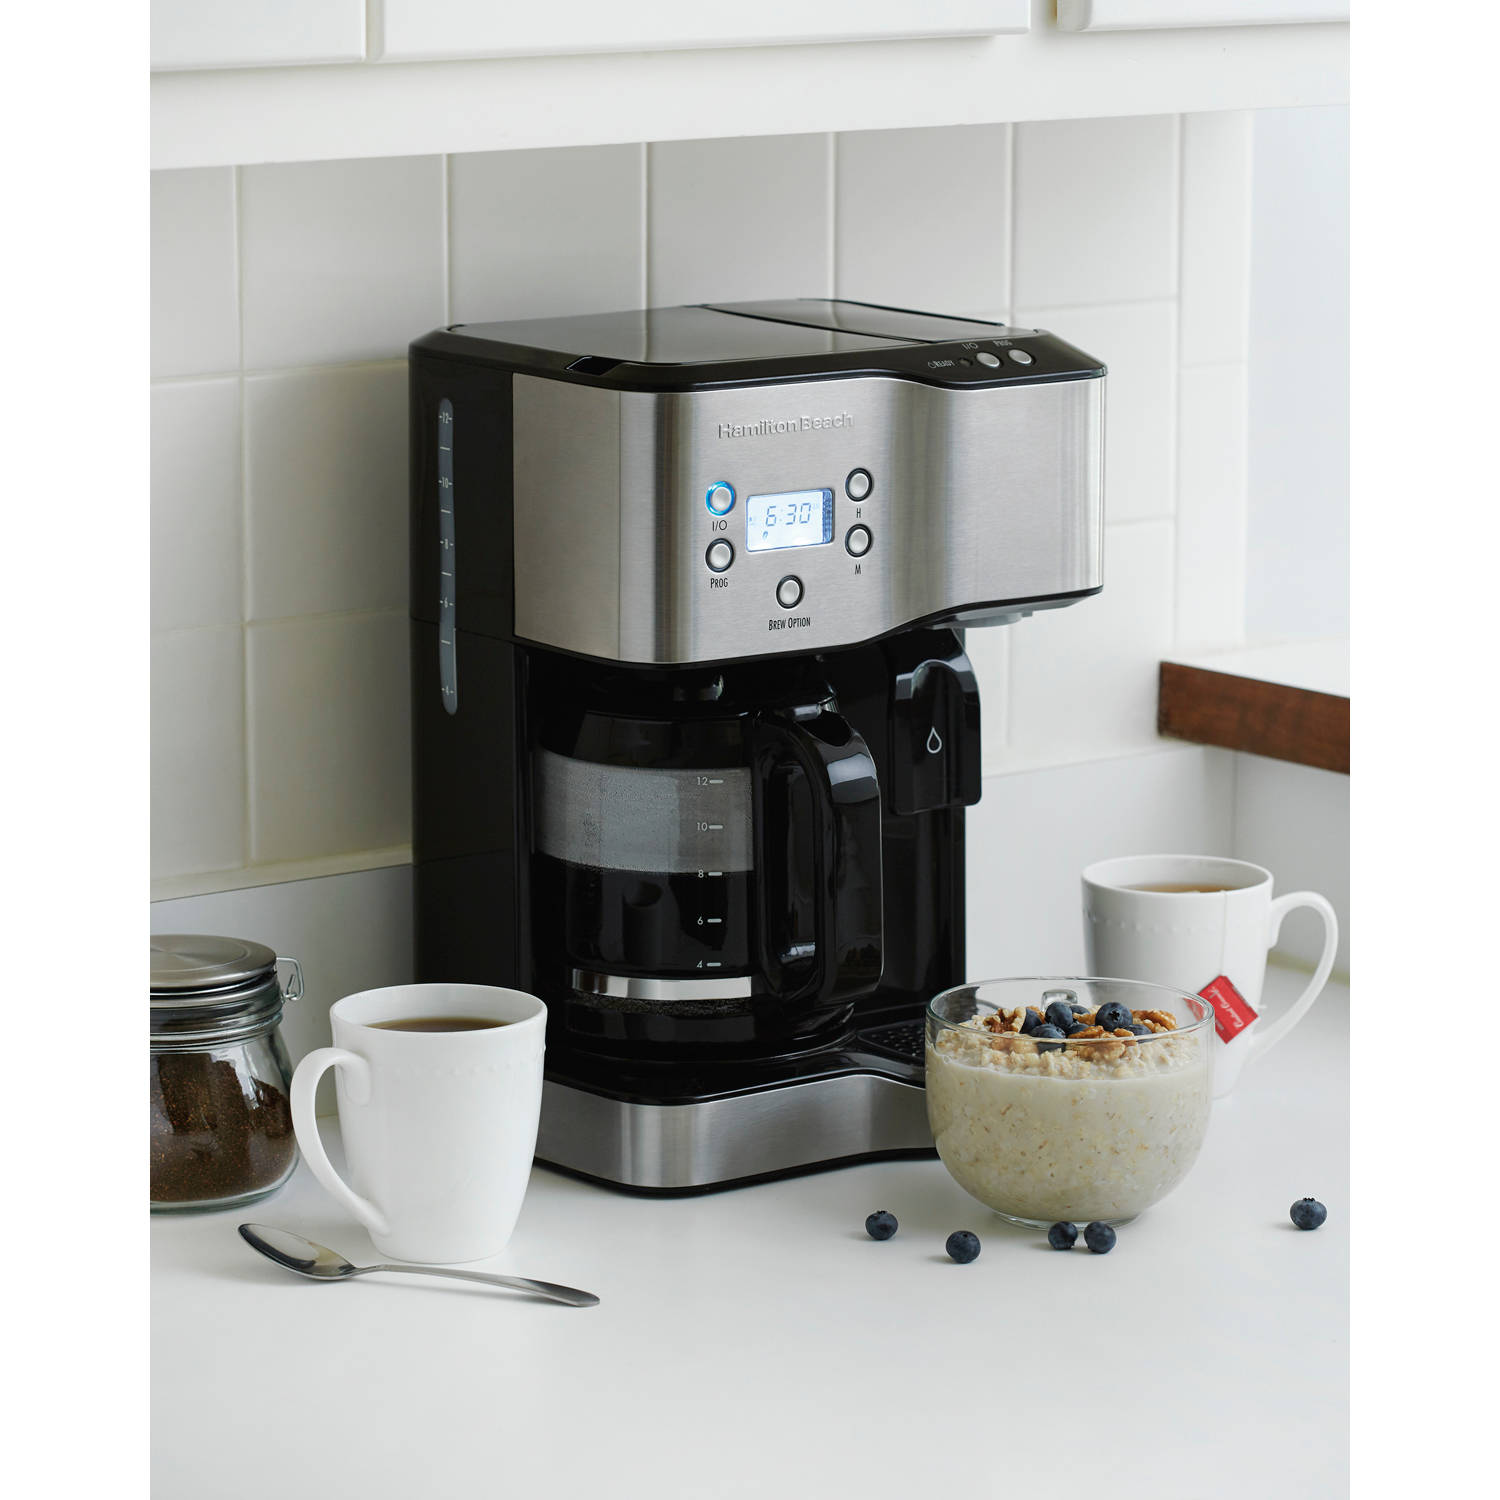 Hamilton Beach 12 Cup Coffeemaker with Hot Water Dispensing | Model# 49982